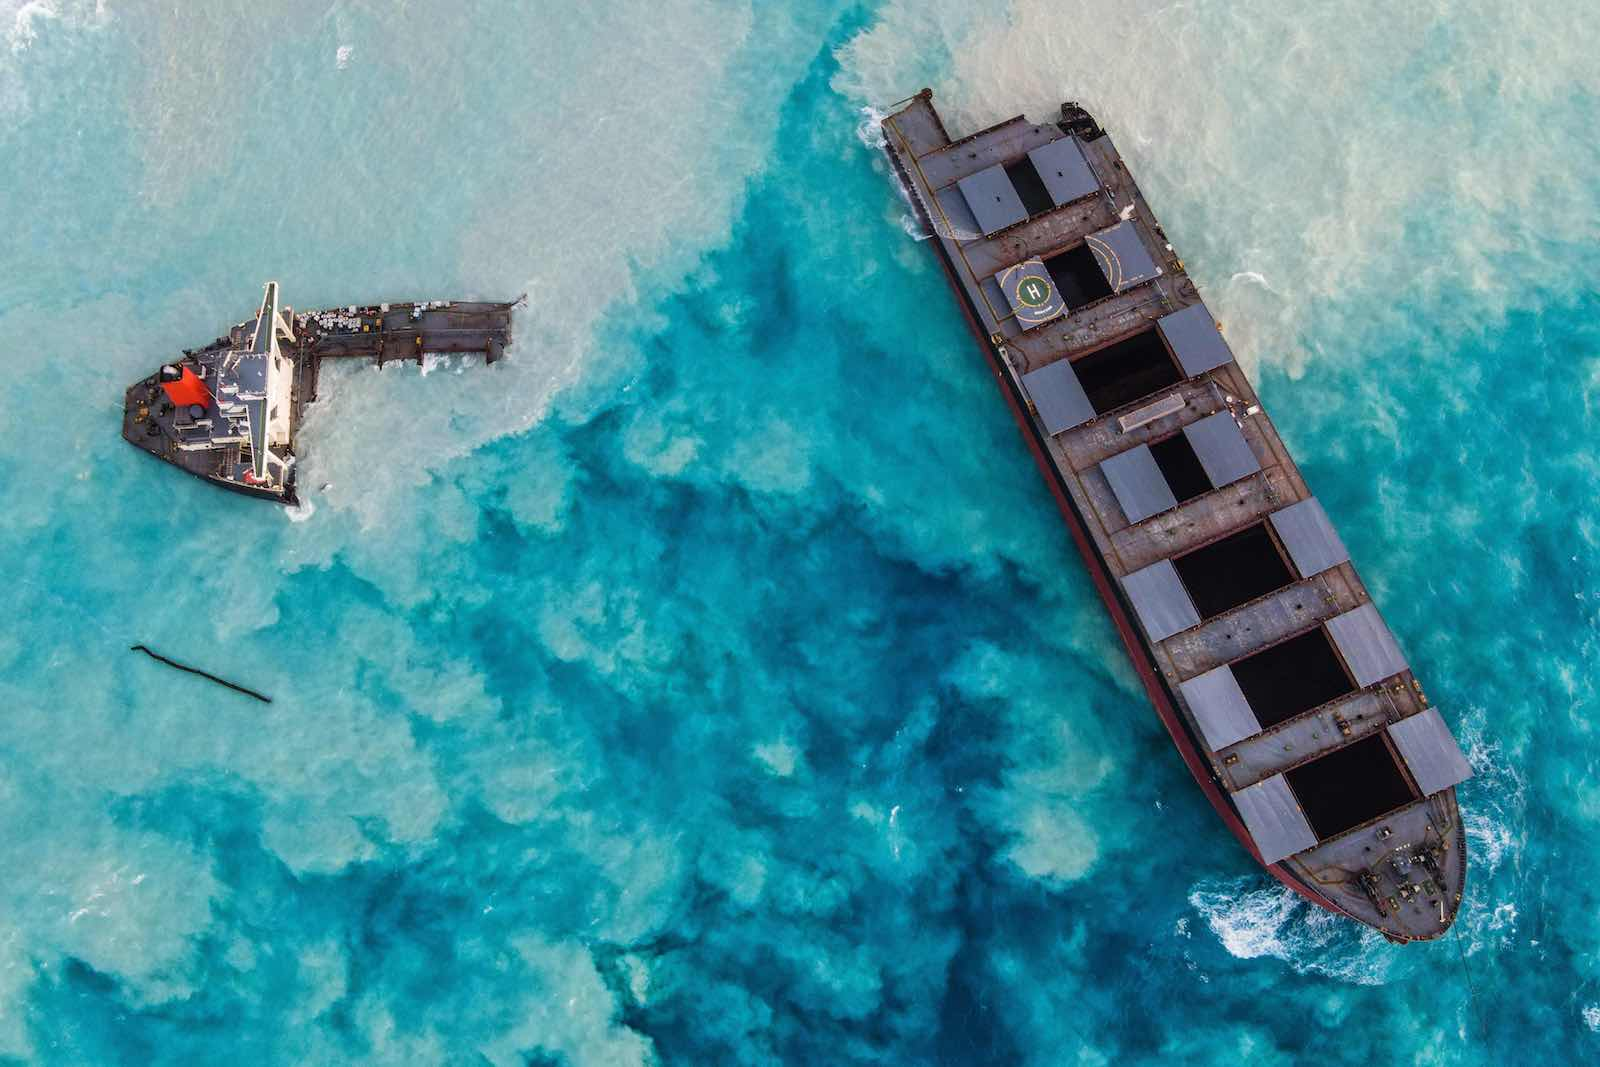 The Japanese-owned bulk carrier MV Wakashio which ran aground last month and broke apart near Blue Bay Marine Park, Mauritius (AFP via Getty Images)